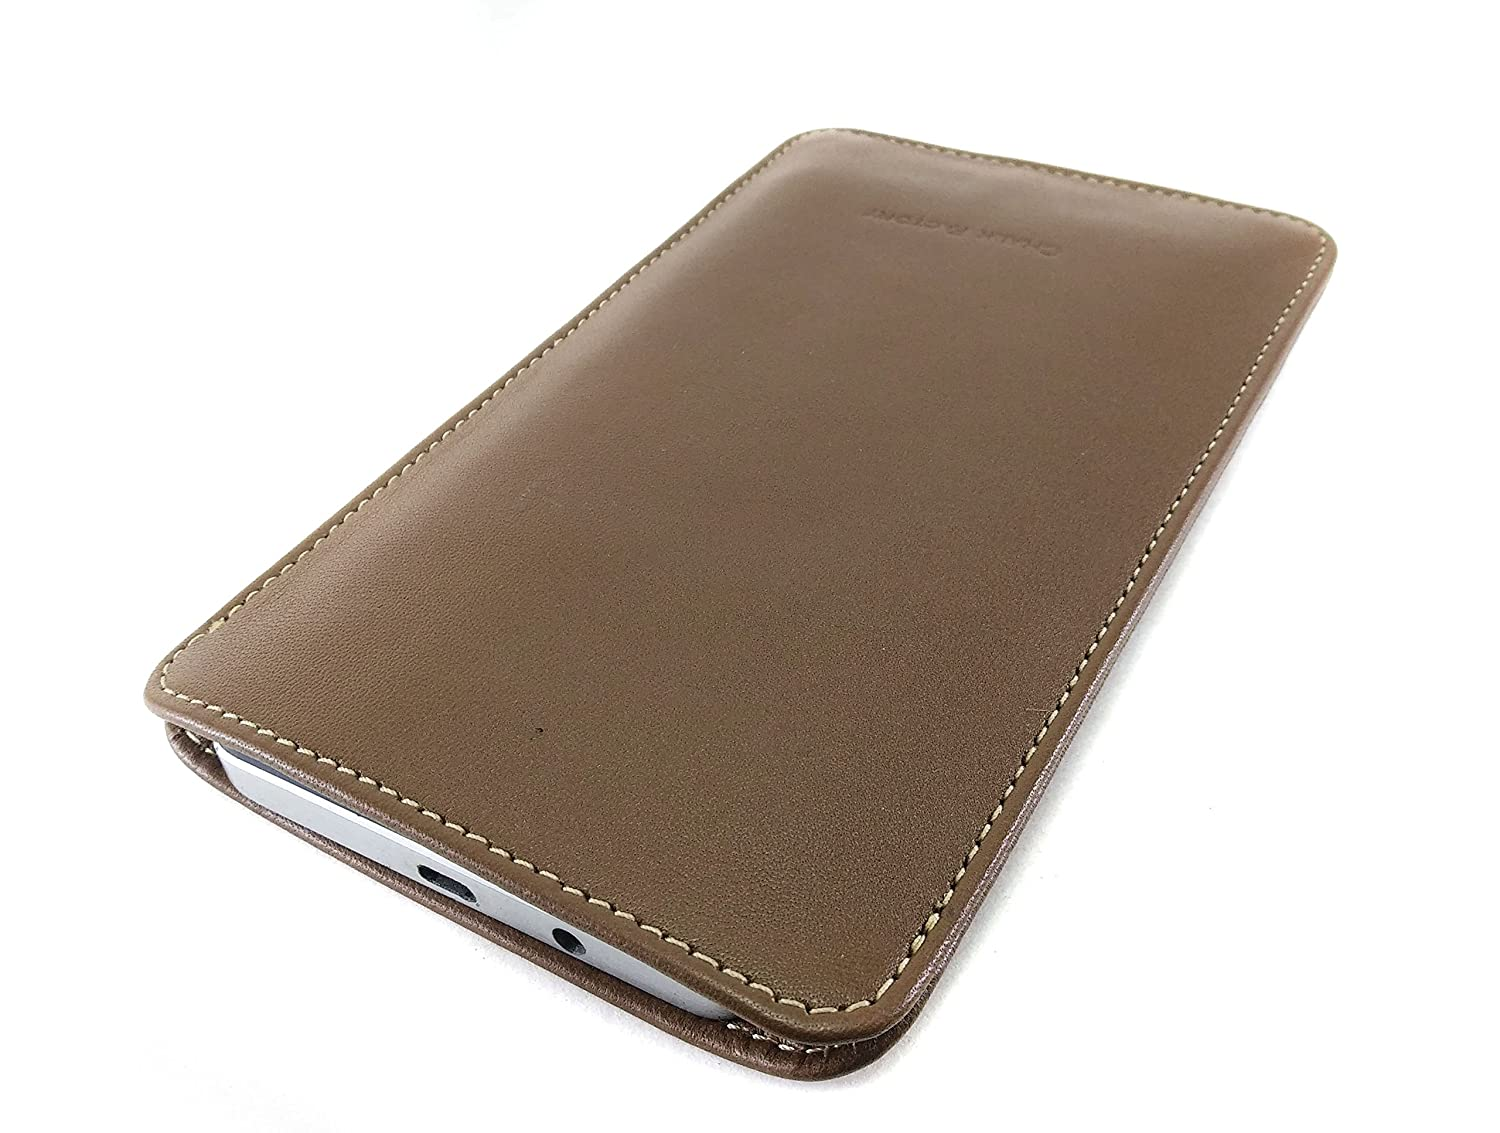 san francisco 56f6a 01139 Chalk Factory Genuine Leather Mobile Case, Pouch for Samsung Galaxy Note 8  Mobile Phone (Tan)